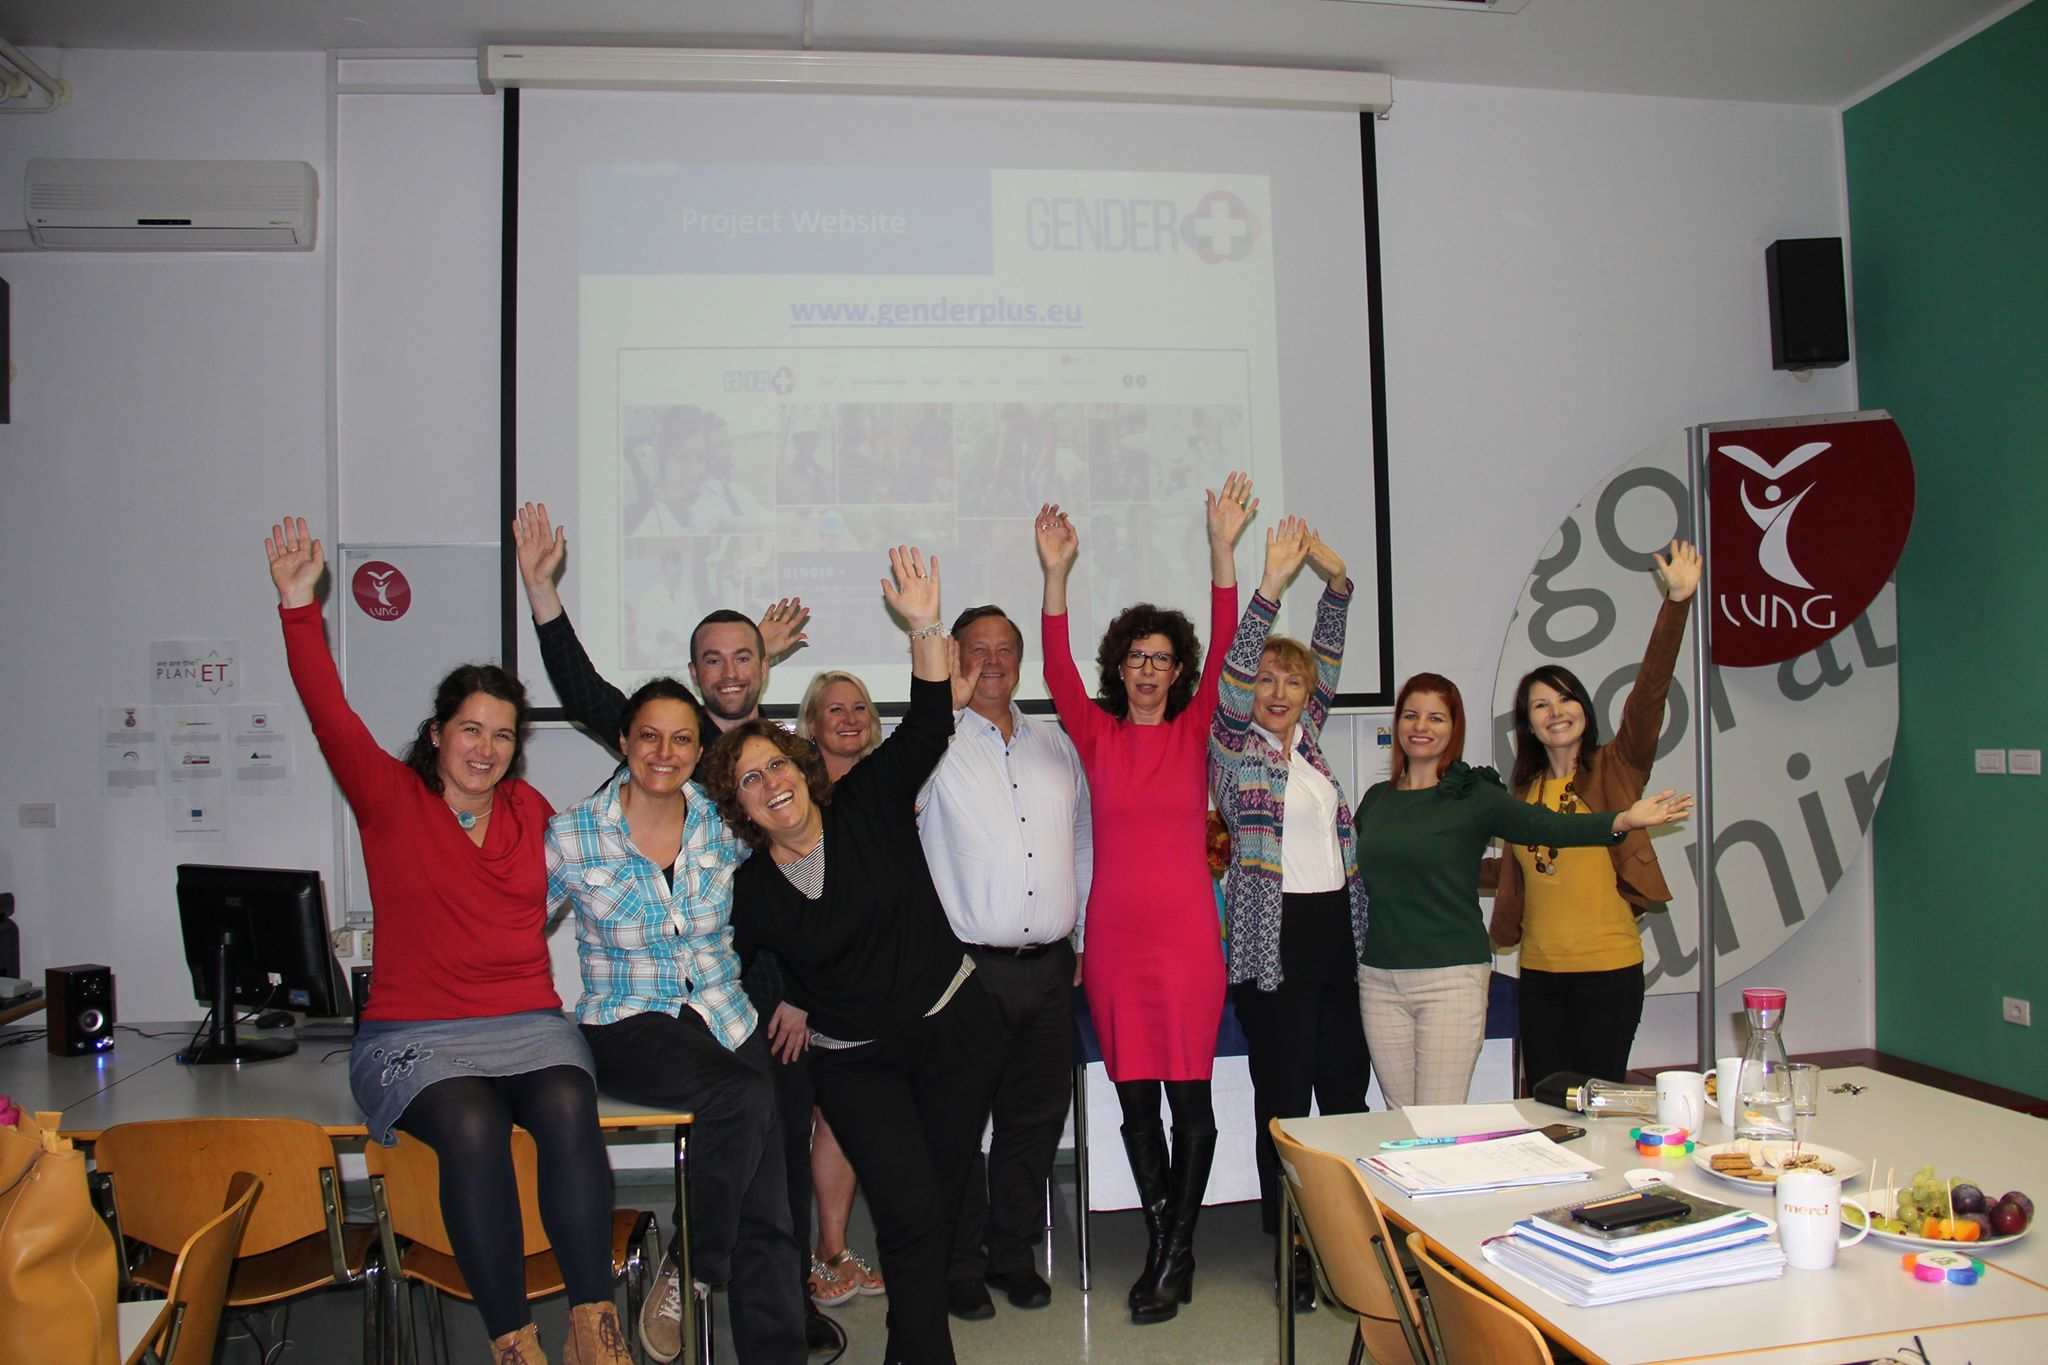 Gender plus Partners Slovenia 1